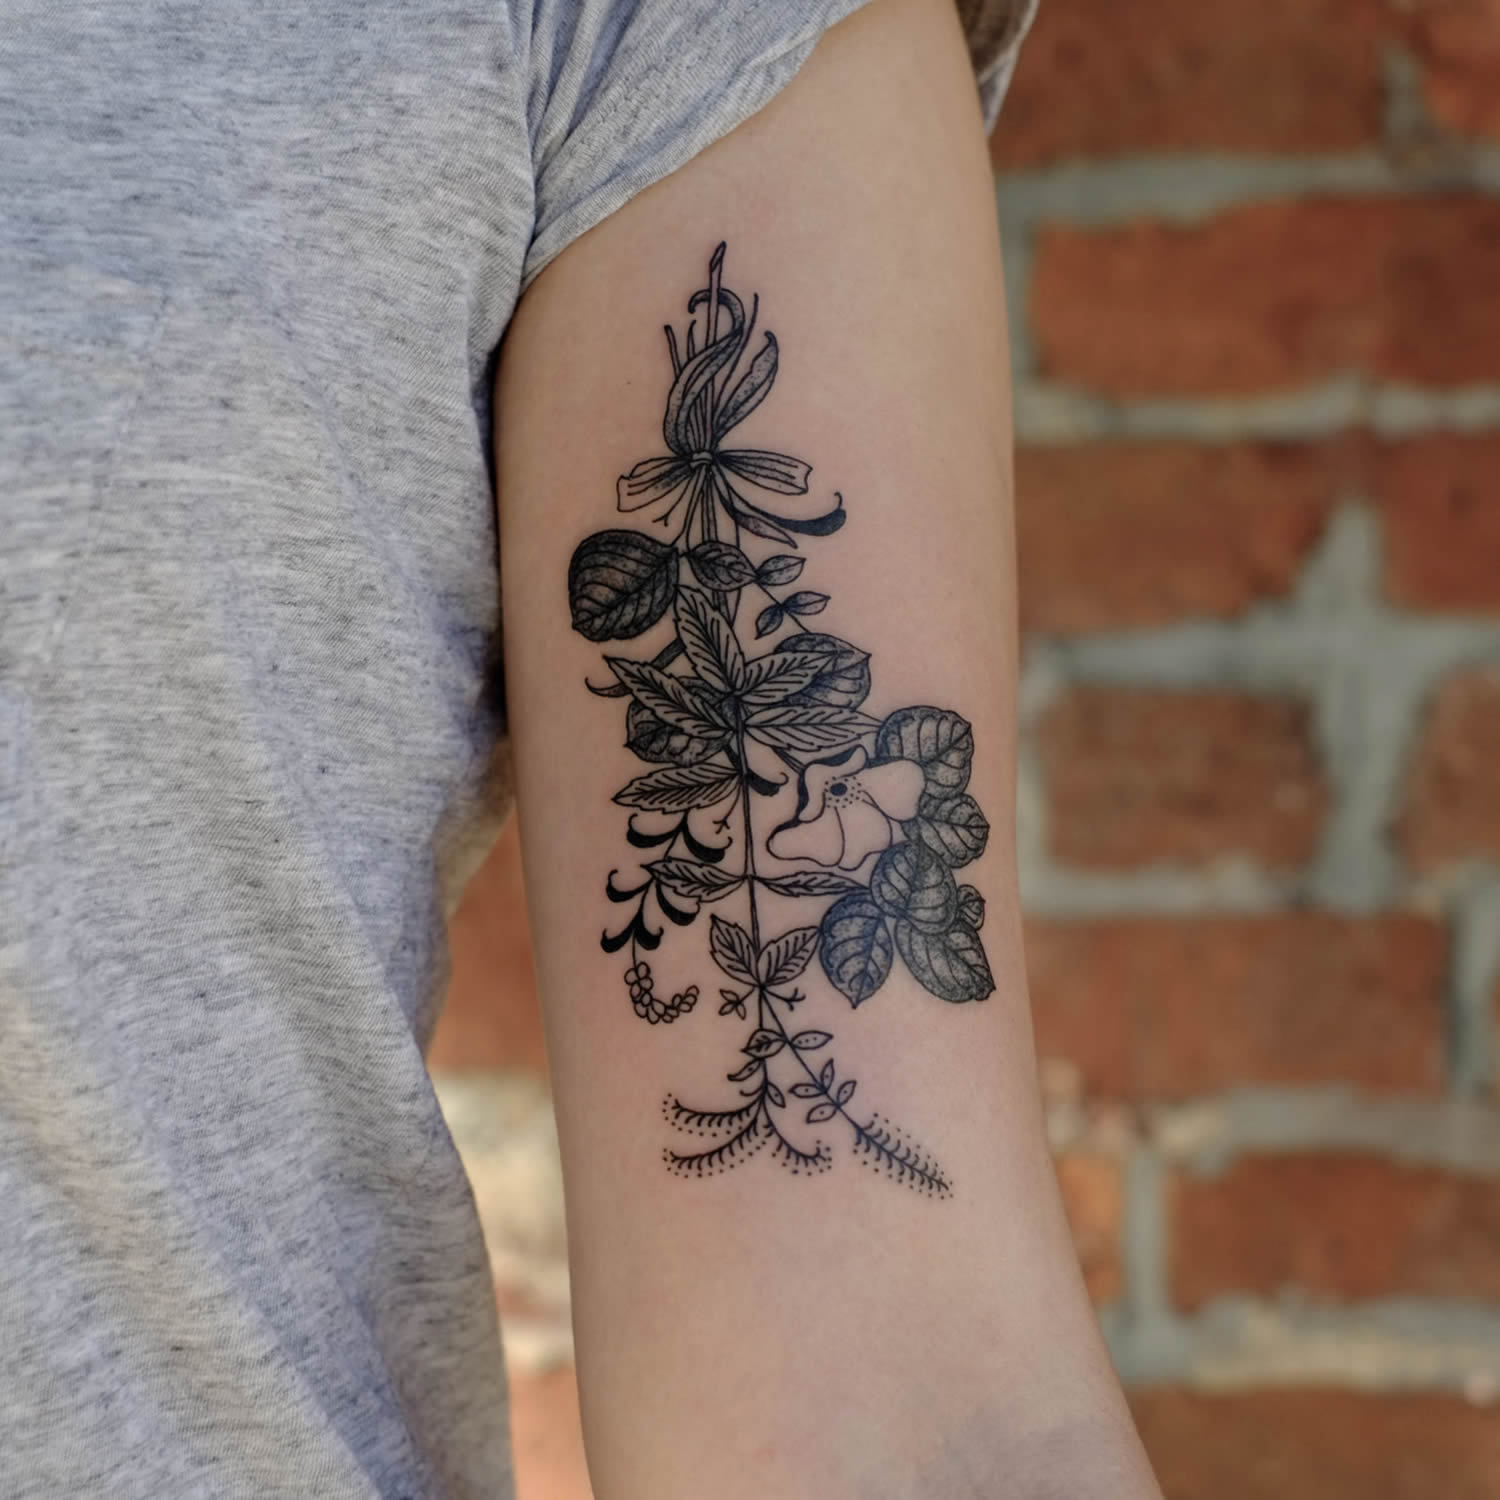 flowers, botanical tattoo by victor j webster